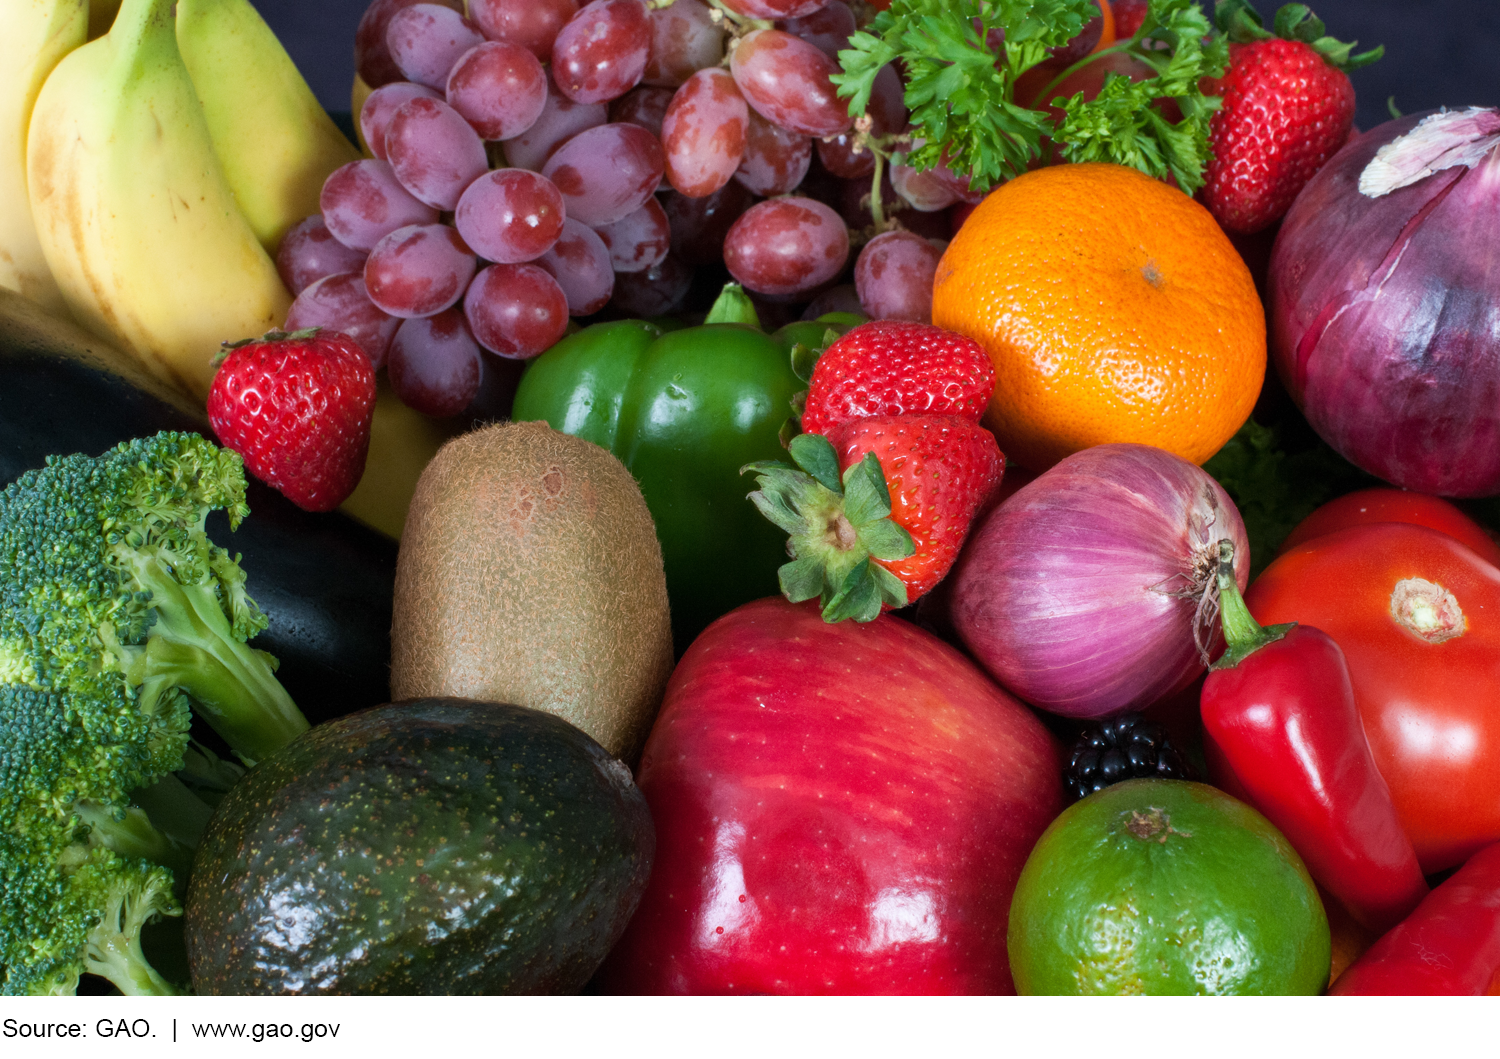 Photo showing a variety of fruits and vegetables.